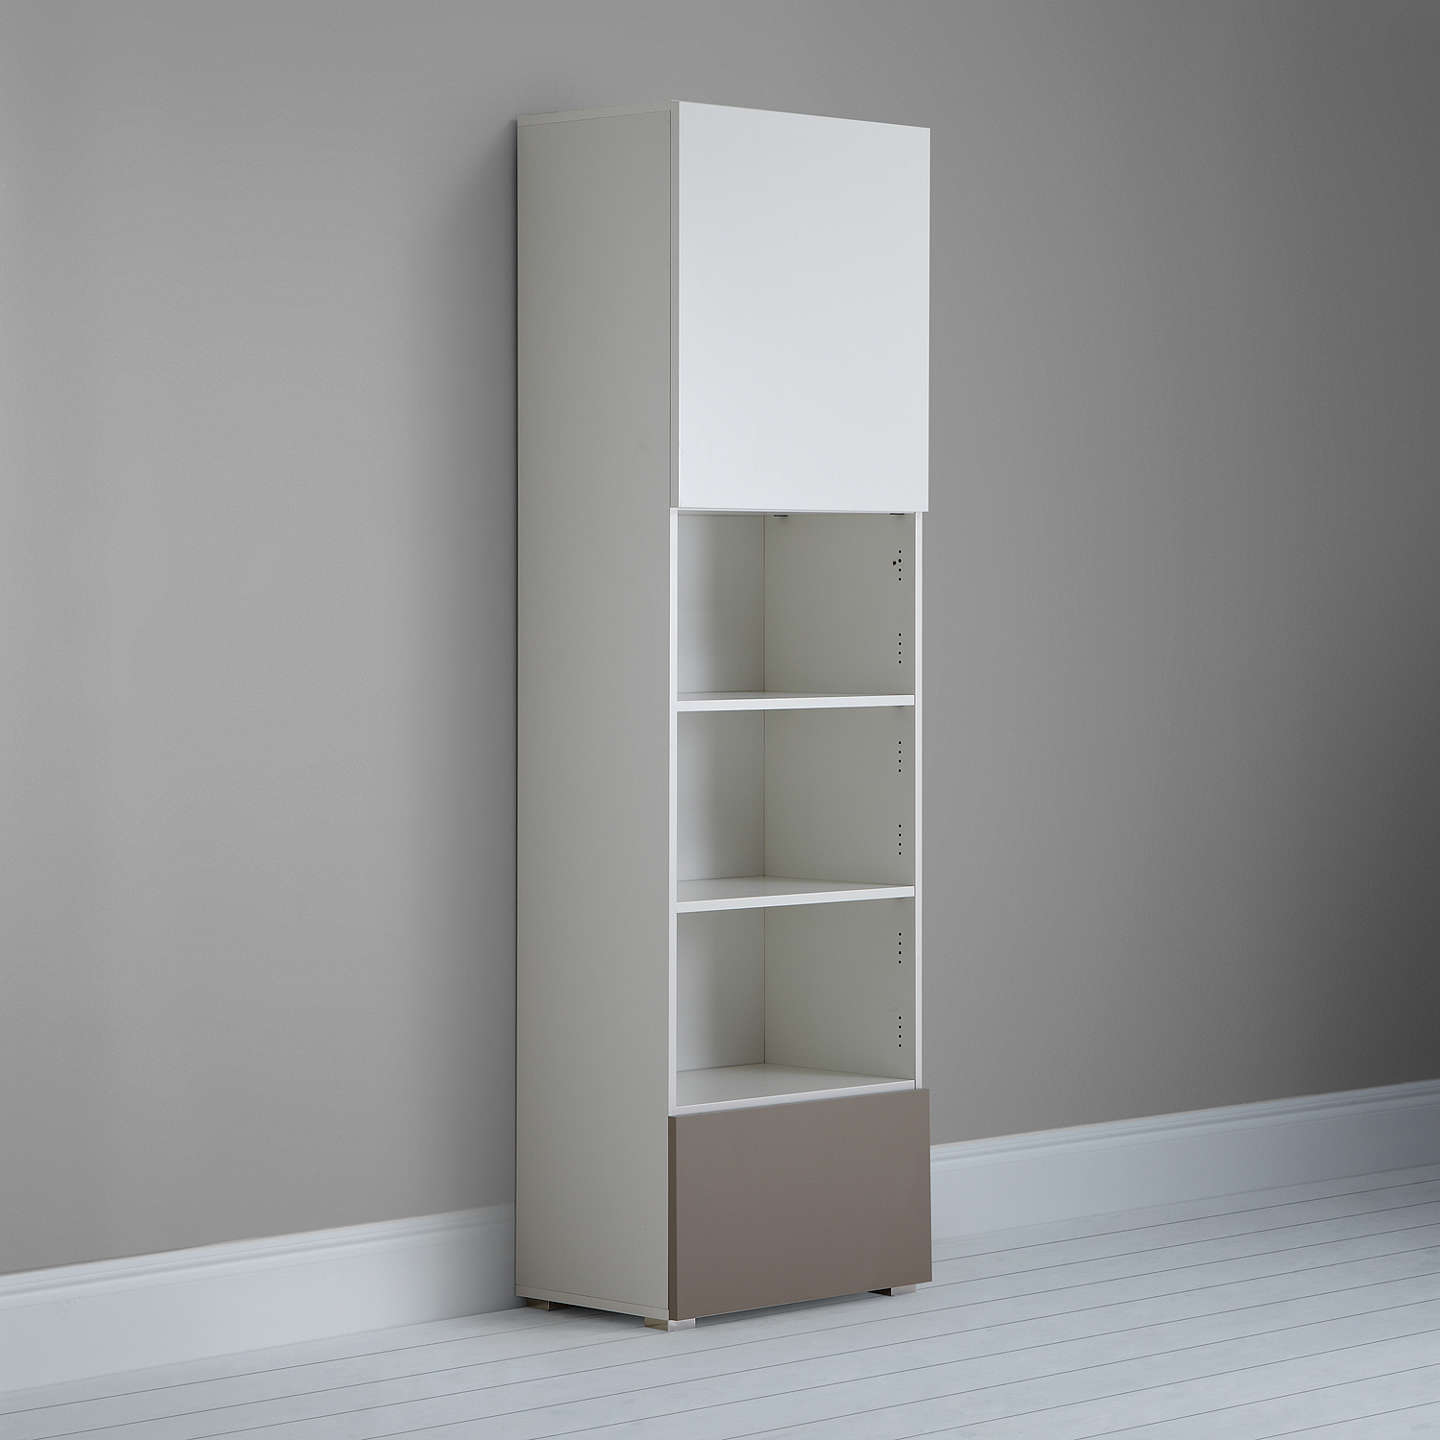 BuyHouse by John Lewis Mix it Tall 2-Door Single Shelf Unit, White/Mocha Online at johnlewis.com